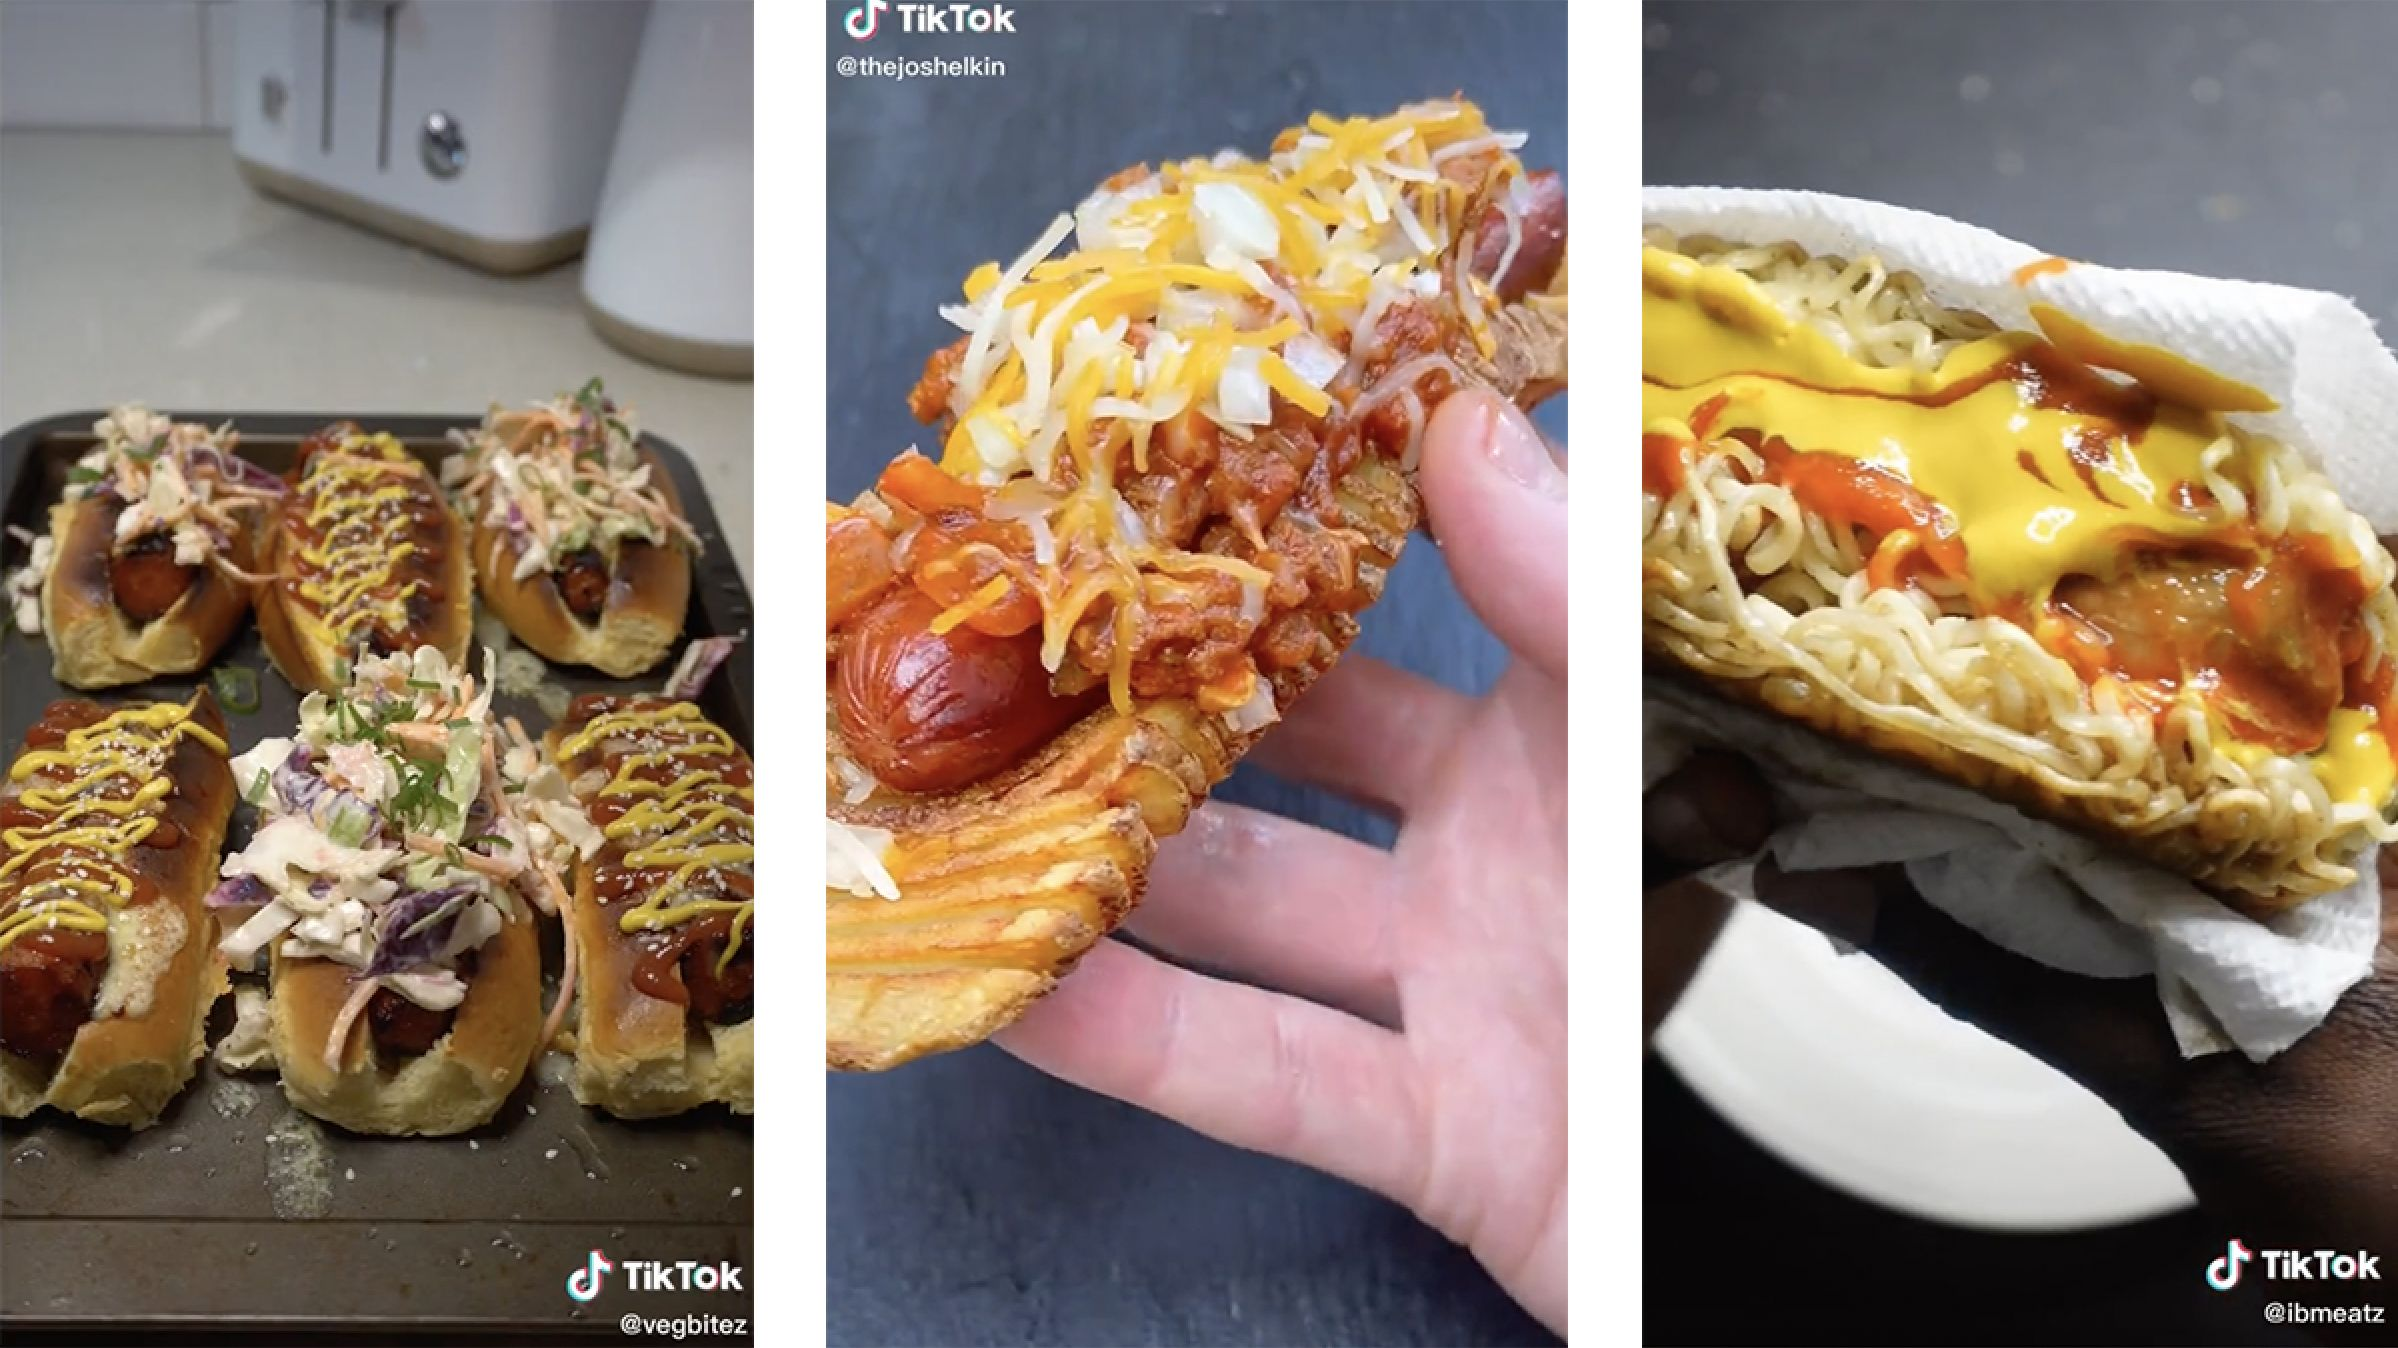 5 ways to level up hot dogs to make them extra delicious